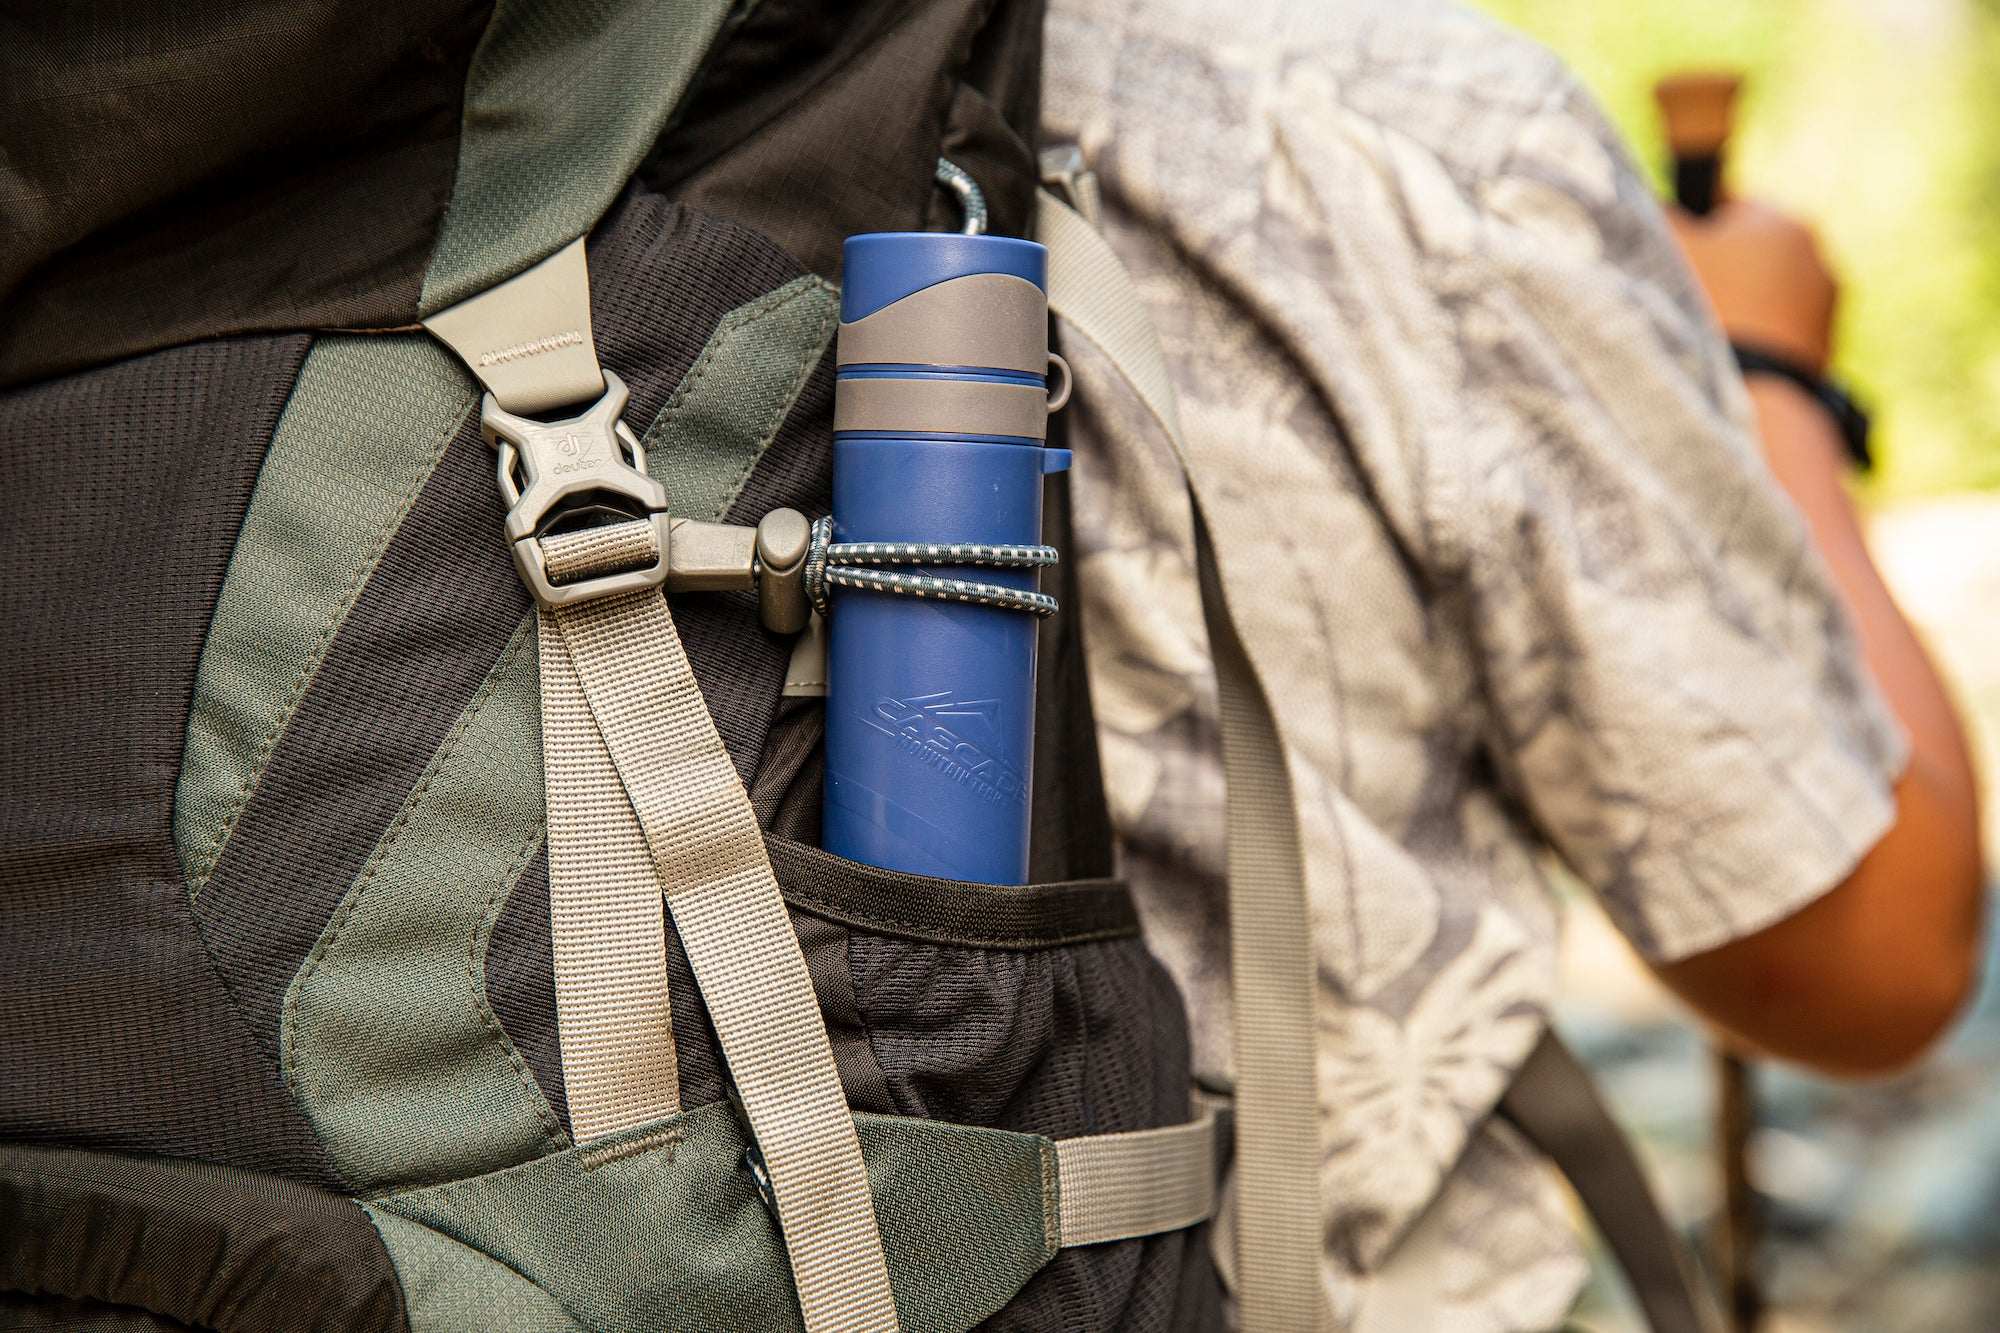 Water filter straw in backpack